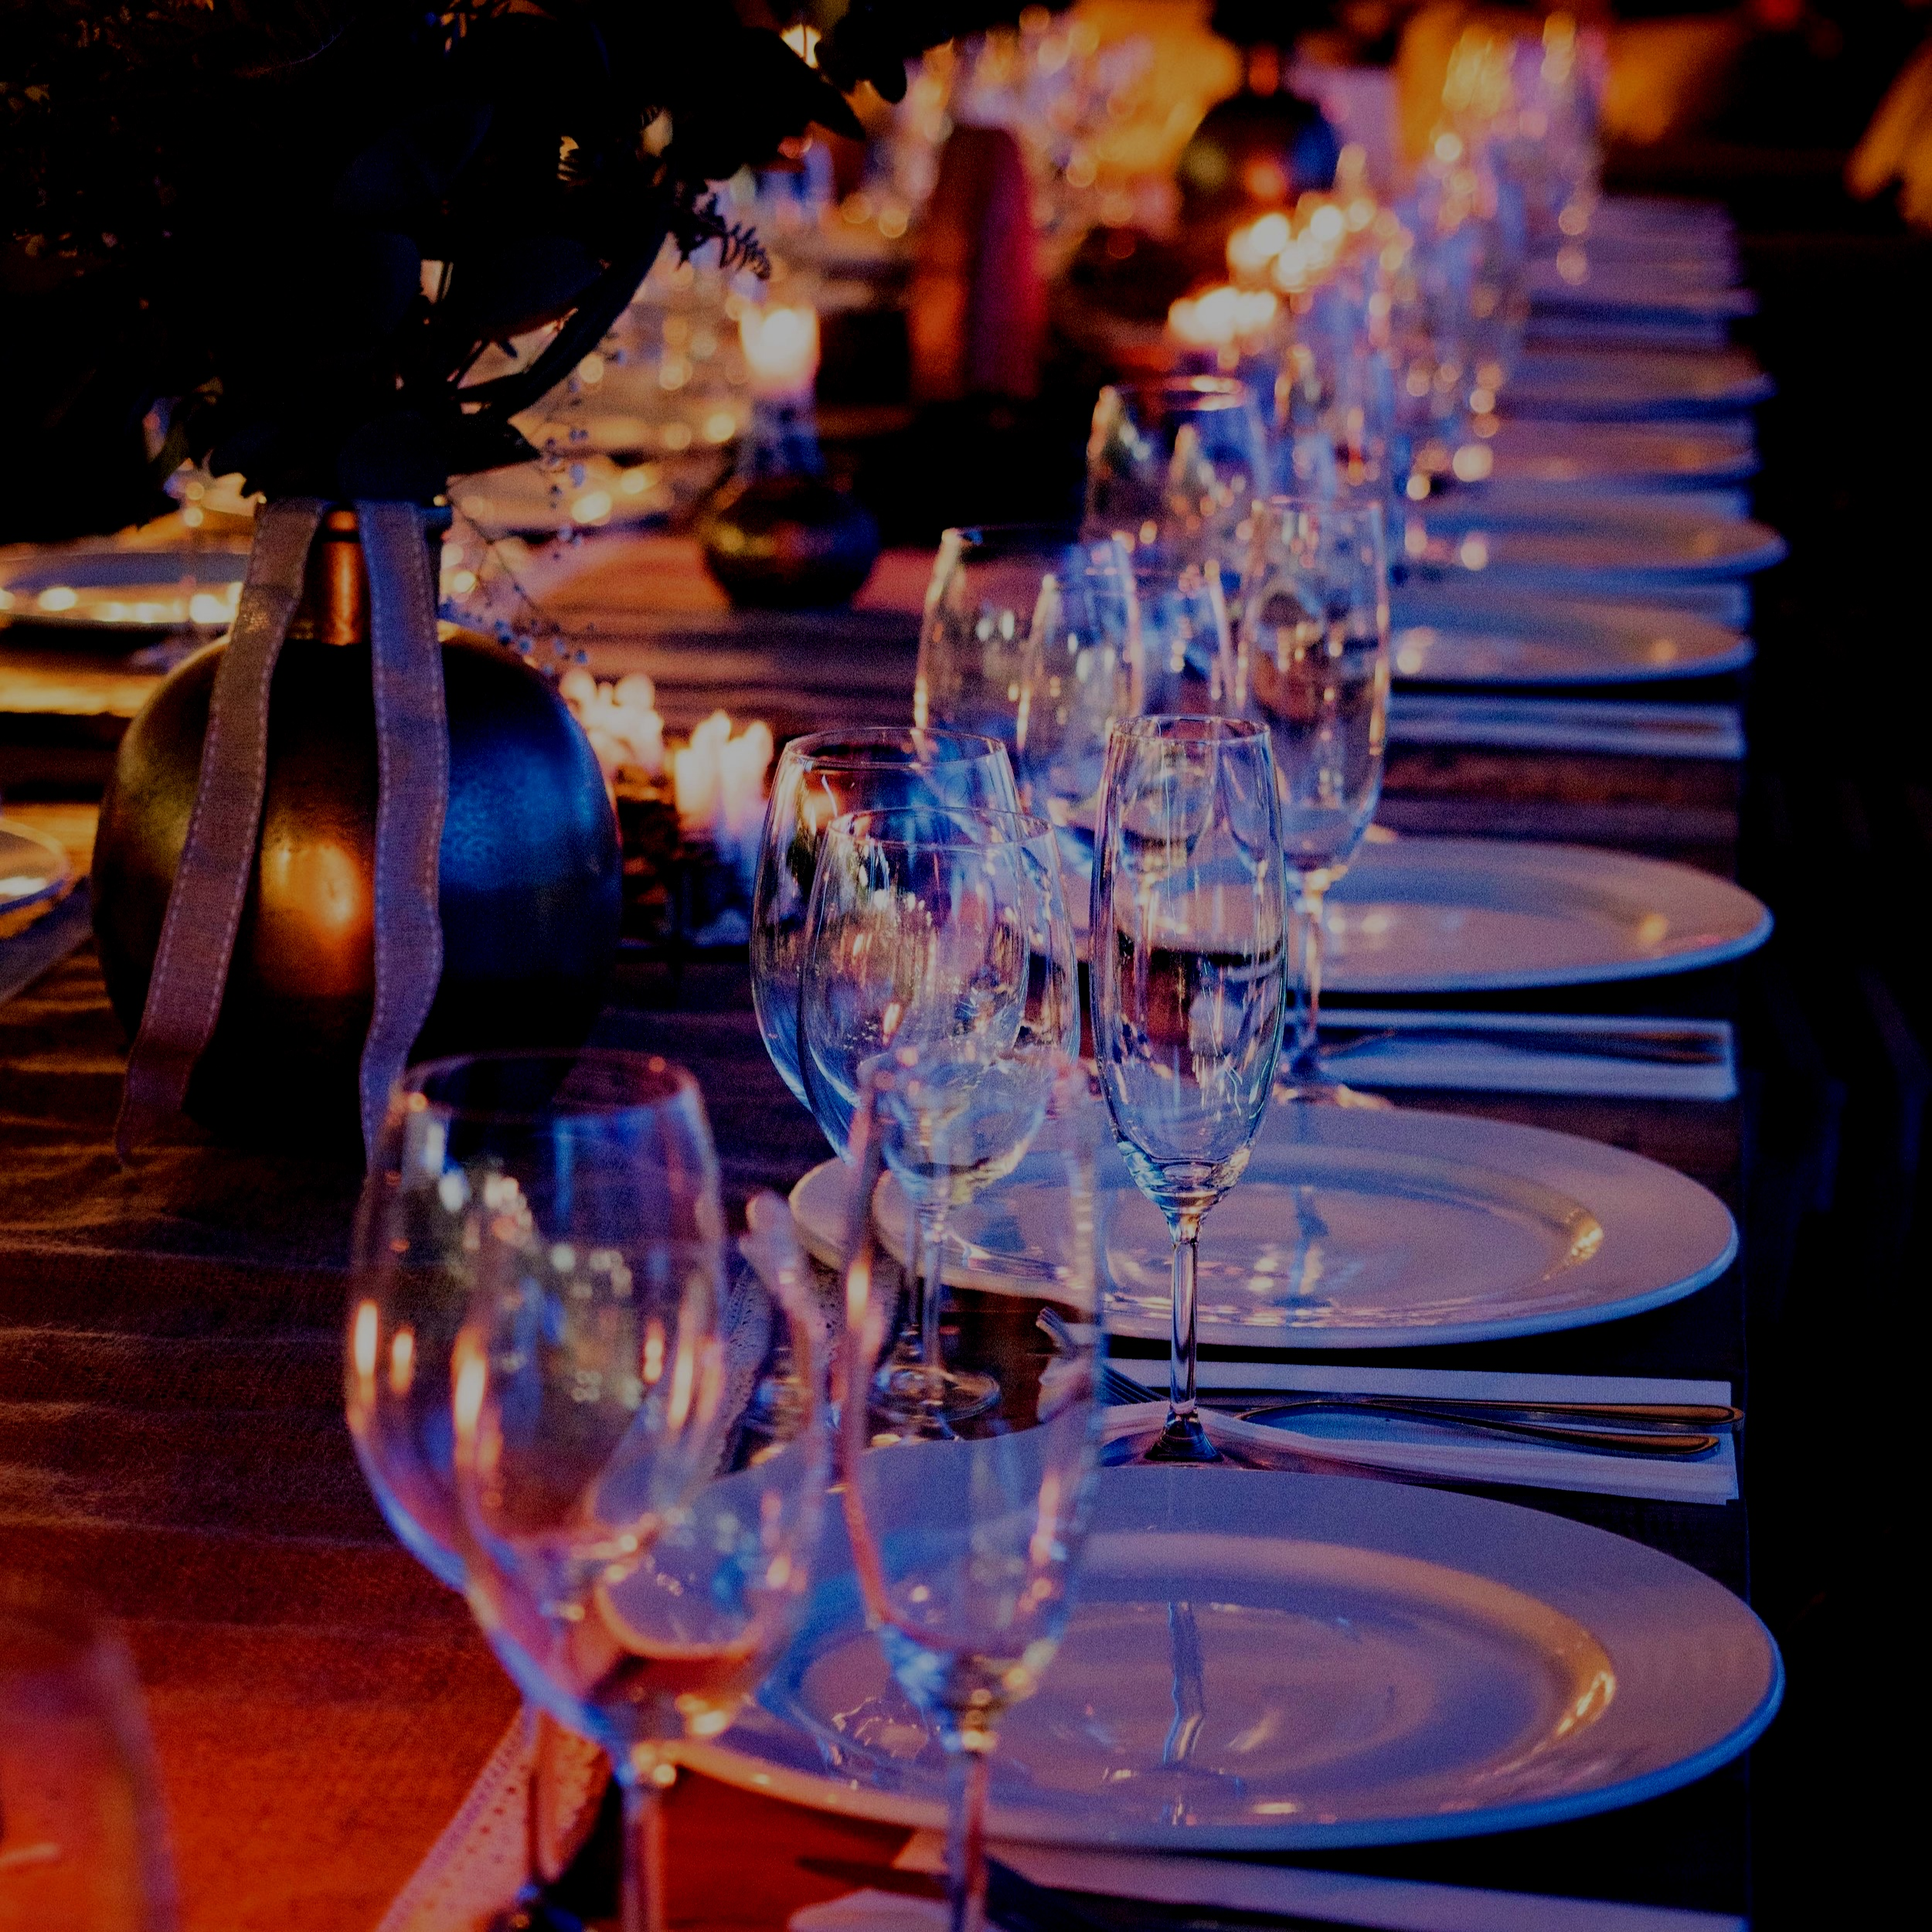 Event Packages - Butler passed hors d'oeuvres, full service dinner buffets or plated with service staff, beverage stations and more. Choose a full service package or pick and choose the individual services that fits your needs best.